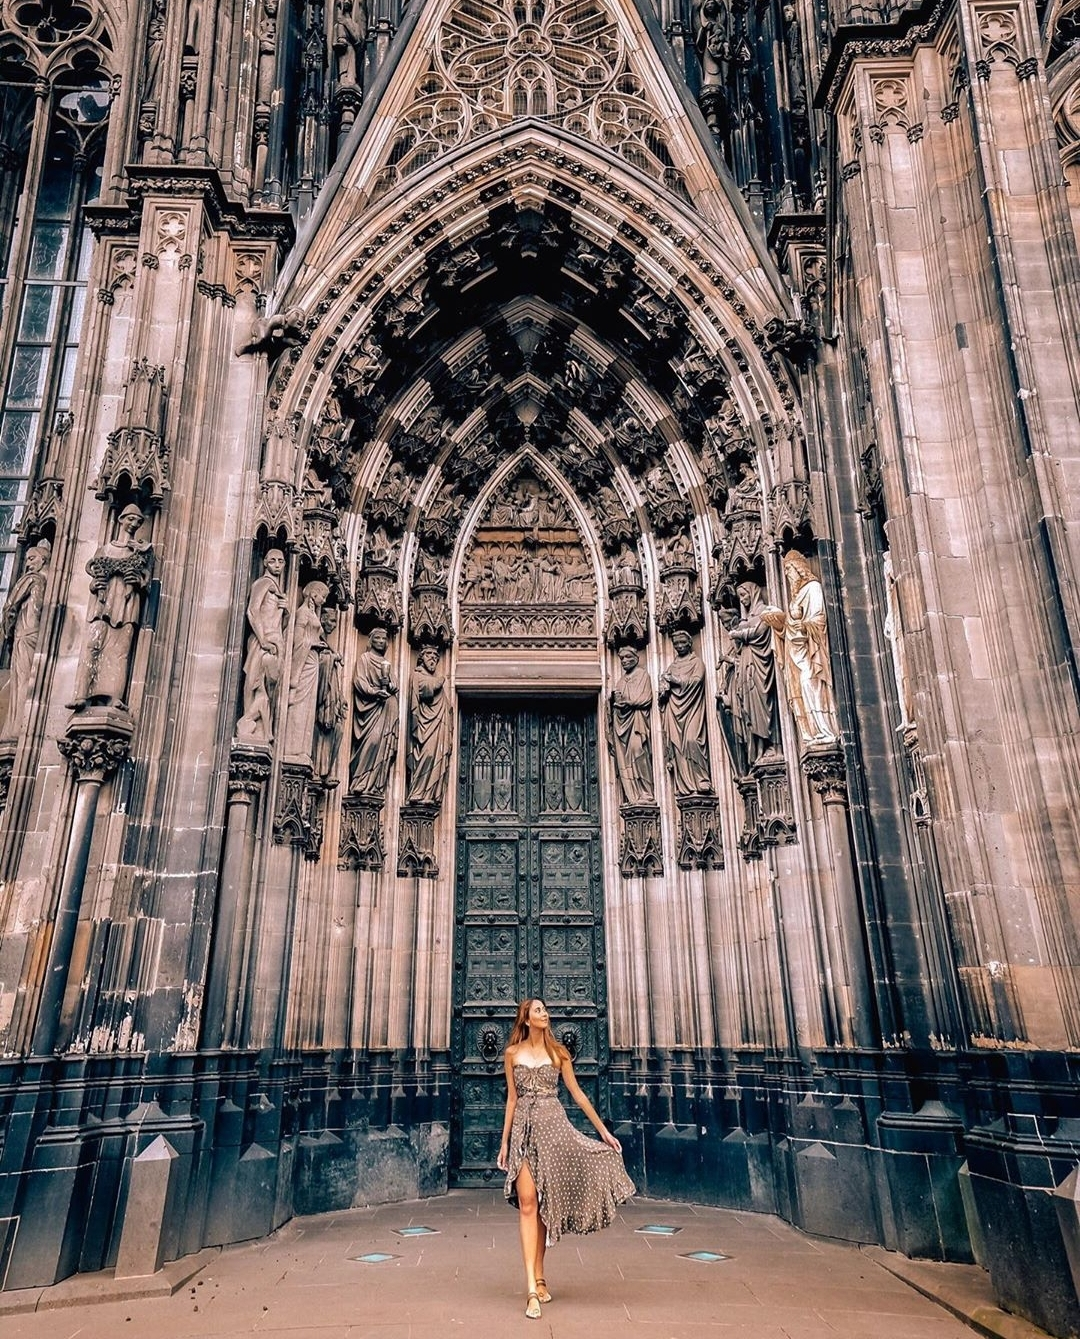 Europe Virtual Tour: Gothic Cathedral in Cologne, Germany